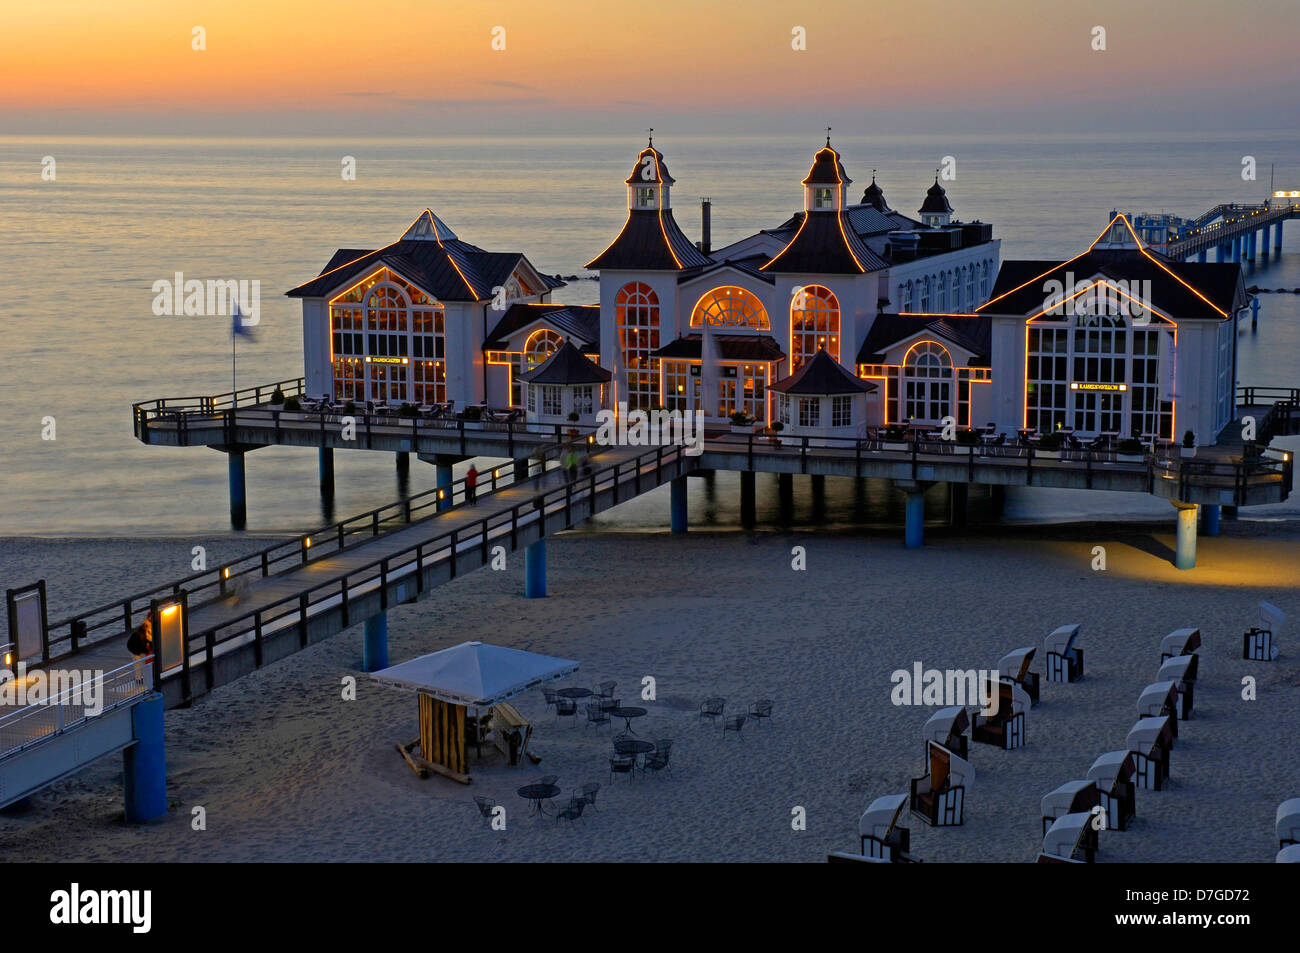 Germany, Mecklenburg-West Pomerania, island Rügen, Sellin, sea bridge, the Baltic Sea - Stock Image